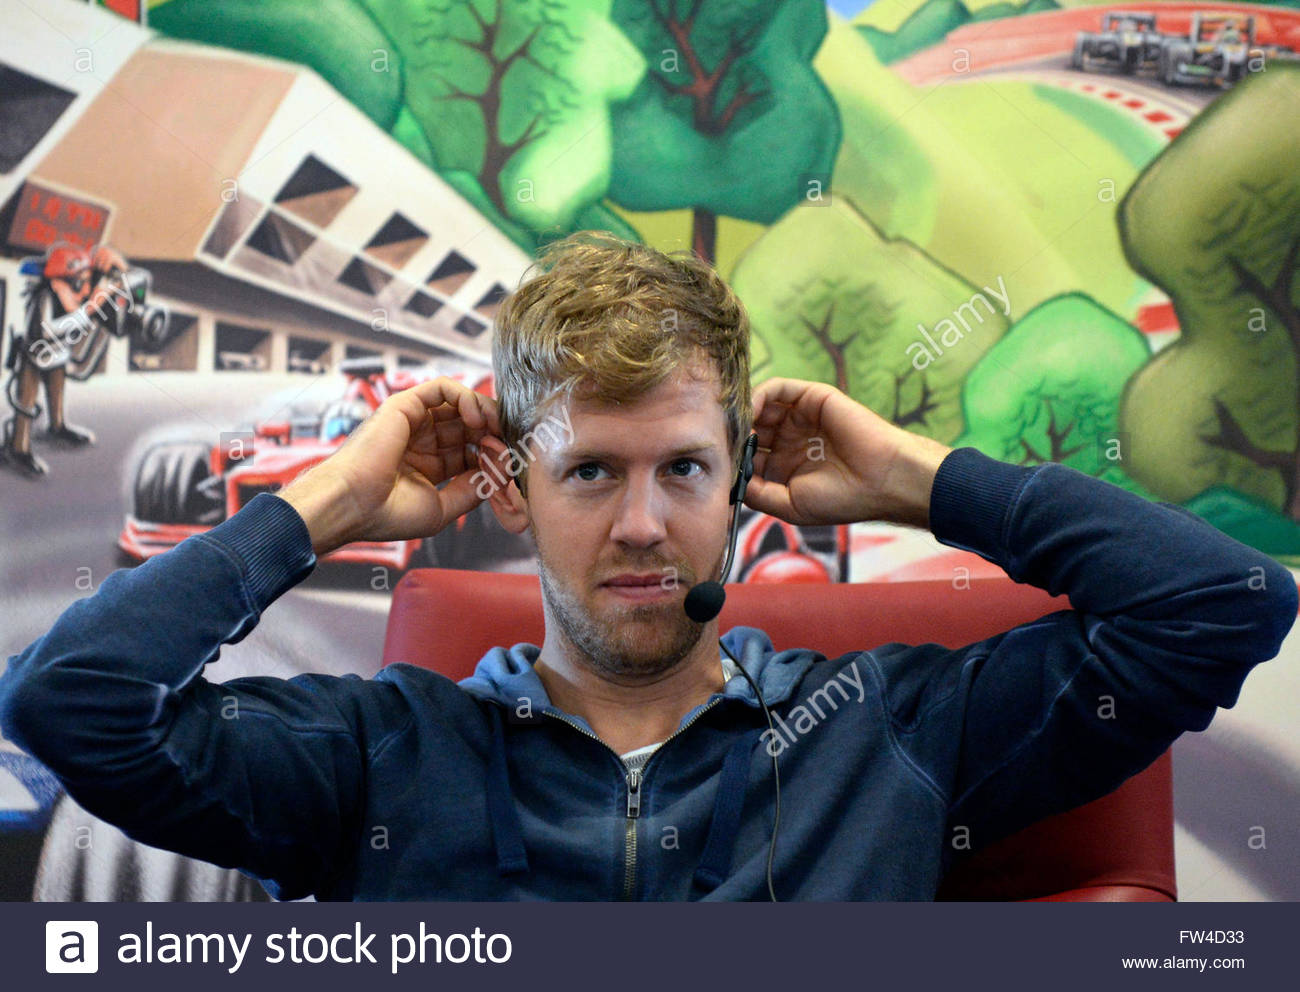 german formula one driver sebastian vettel of red bull racing attends a press meeting in spielberg austria 27 may 2014 in view of the formula one grand austria view red bull